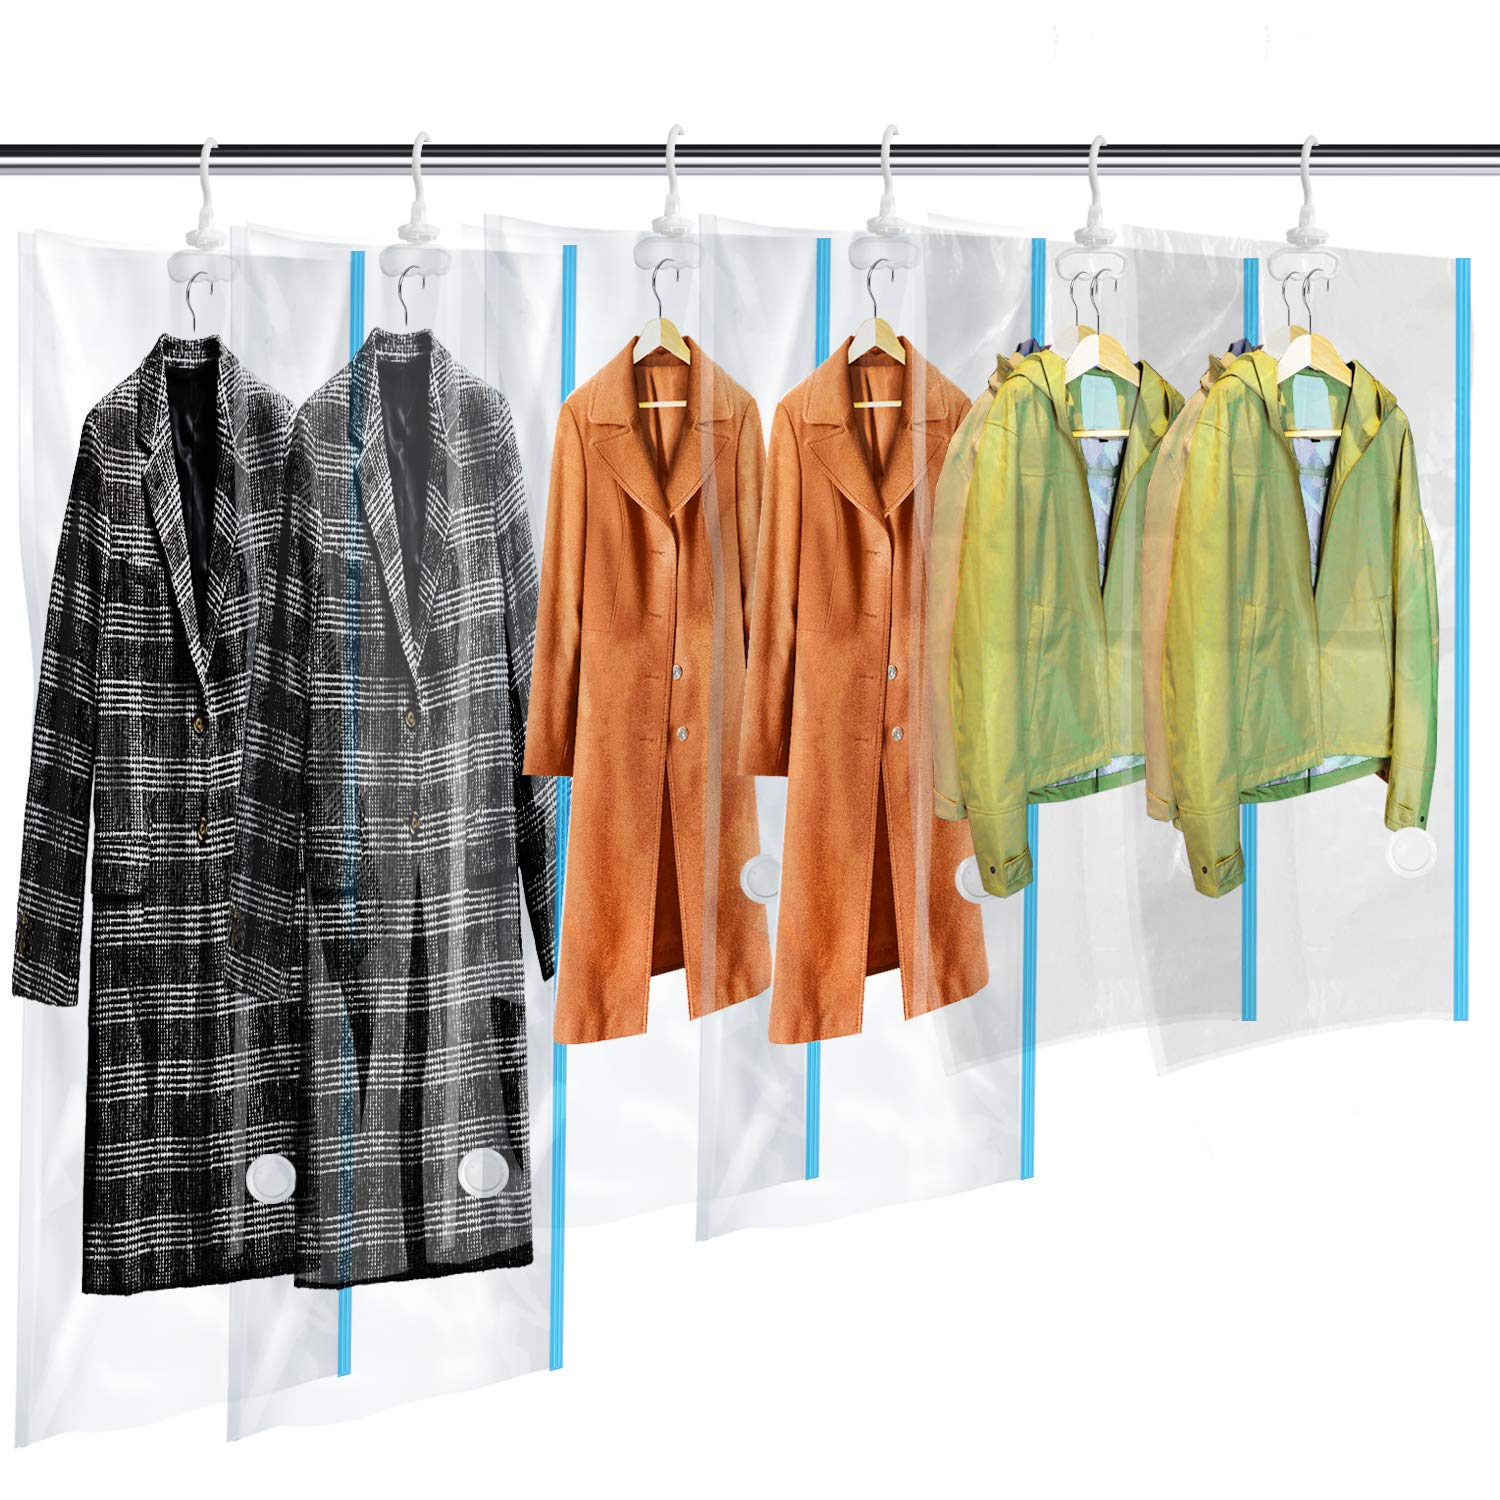 Hanging Vacuum Storage Bags 6 Pack (2Jumbo(57x27.6'') + 2Long + 2Short(41.3x27.6'')) Space Saver Bag Dress Cover with Hook for Coats, Jackets, Clothes & Closet Storage - Hand Pump Included by MRS BAG